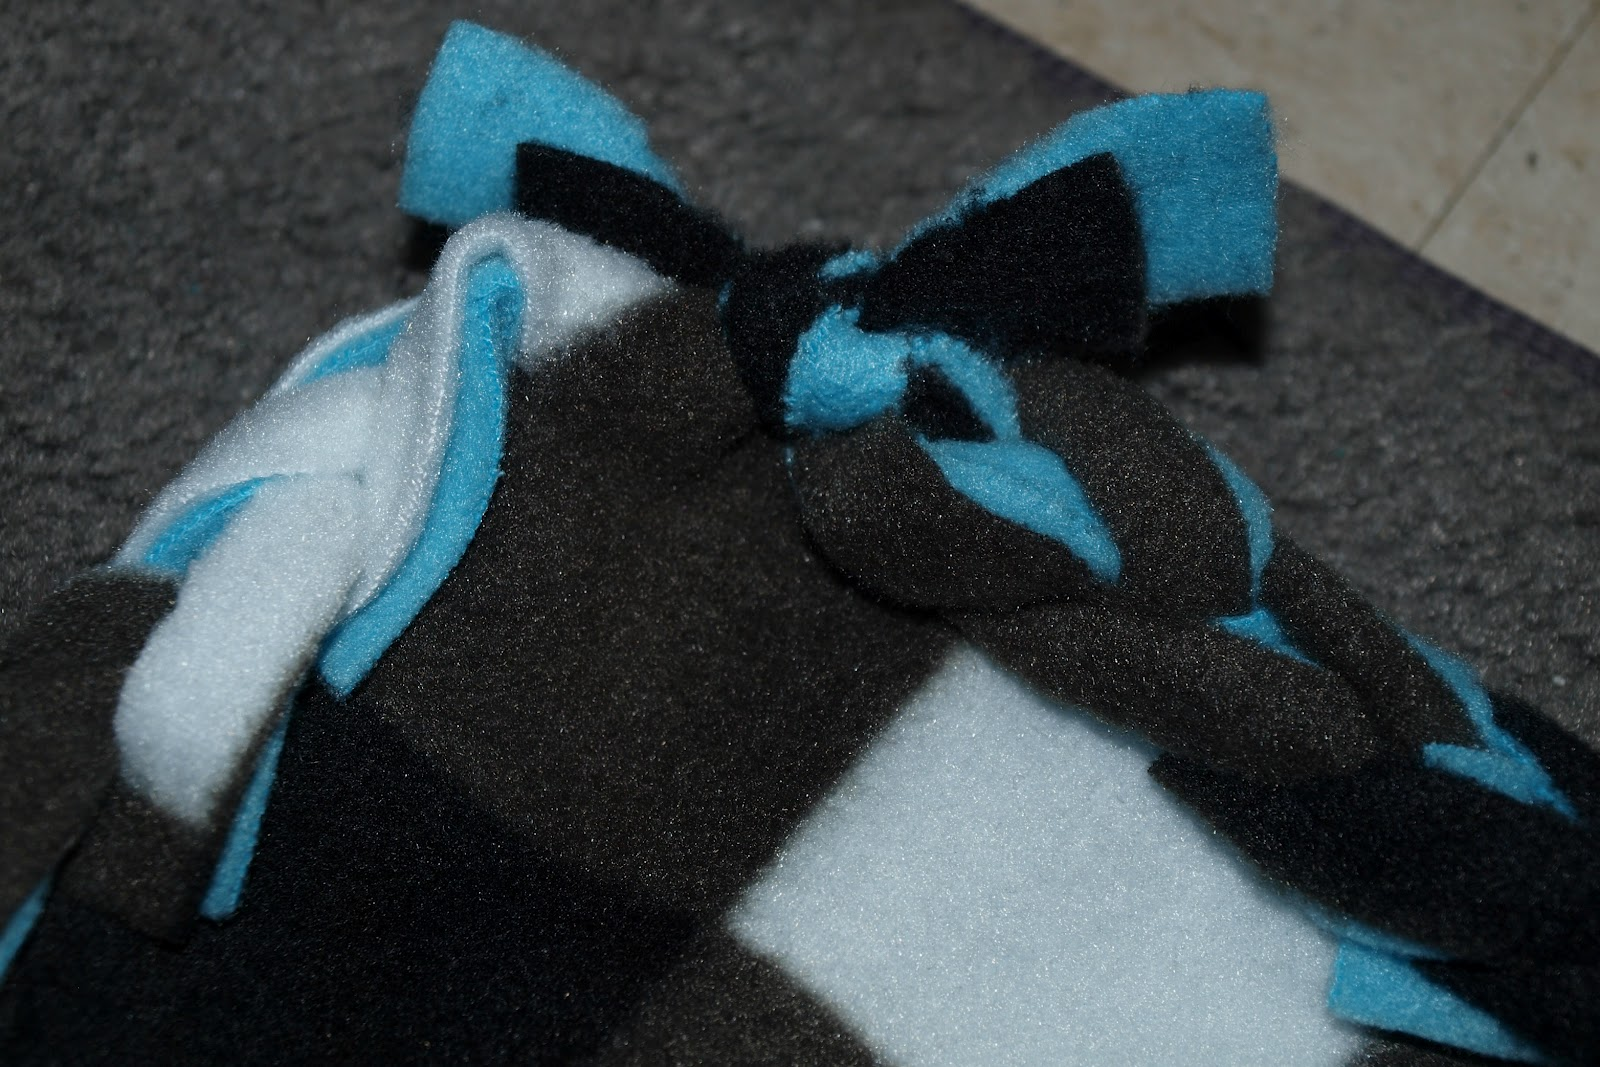 Crocheting Edges On Fleece Blankets : Elemental Carbon: Fleece Blanket with Crocheted Edge // DIY